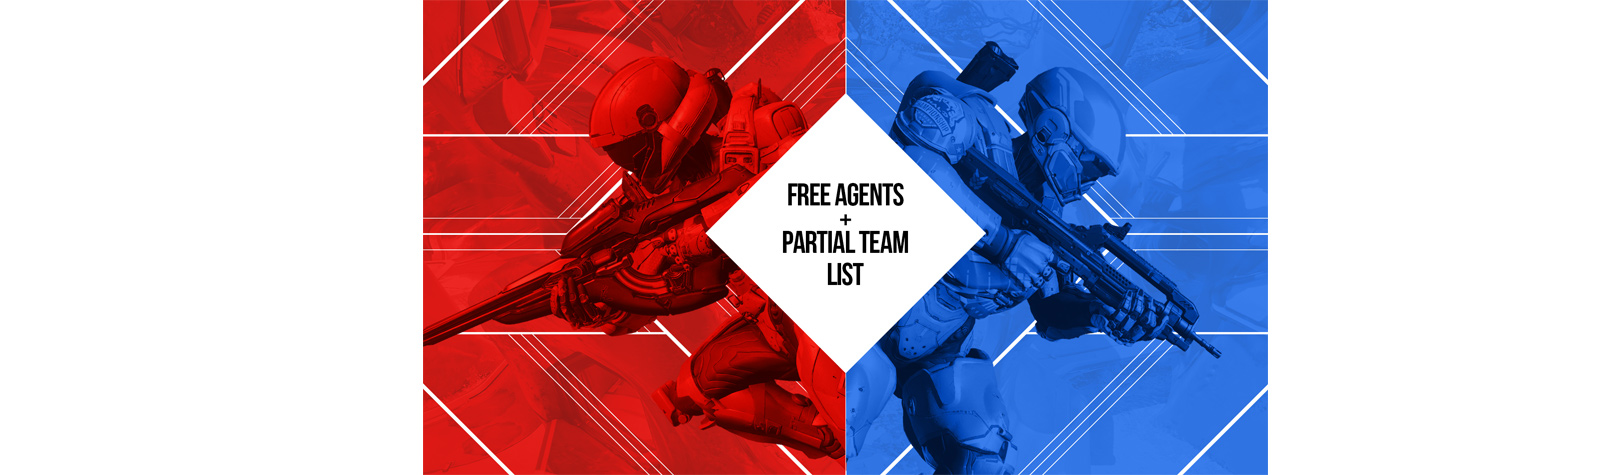 Free Agent/Partial Team List for G4G and DreamHack Dallas